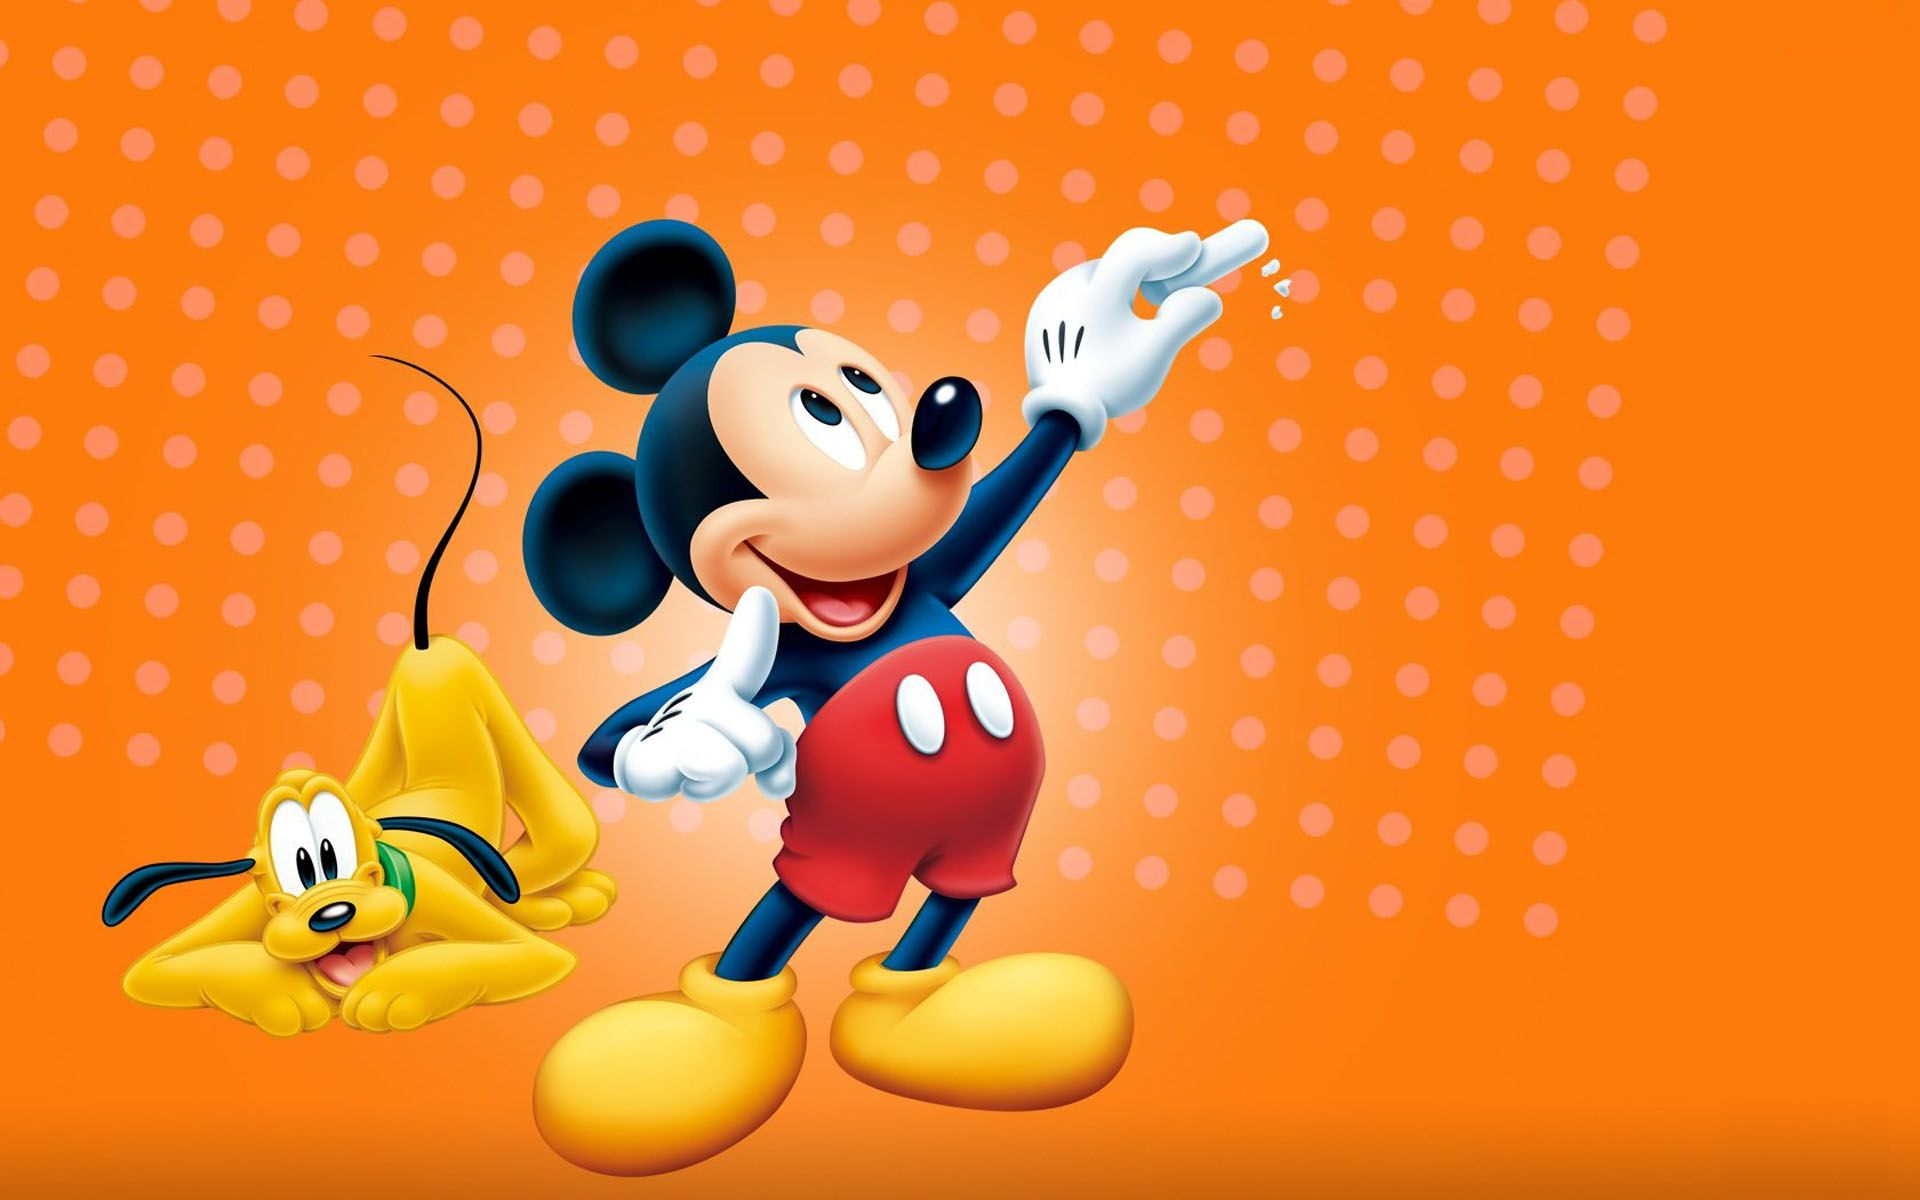 Mickey Mouse Hd Images